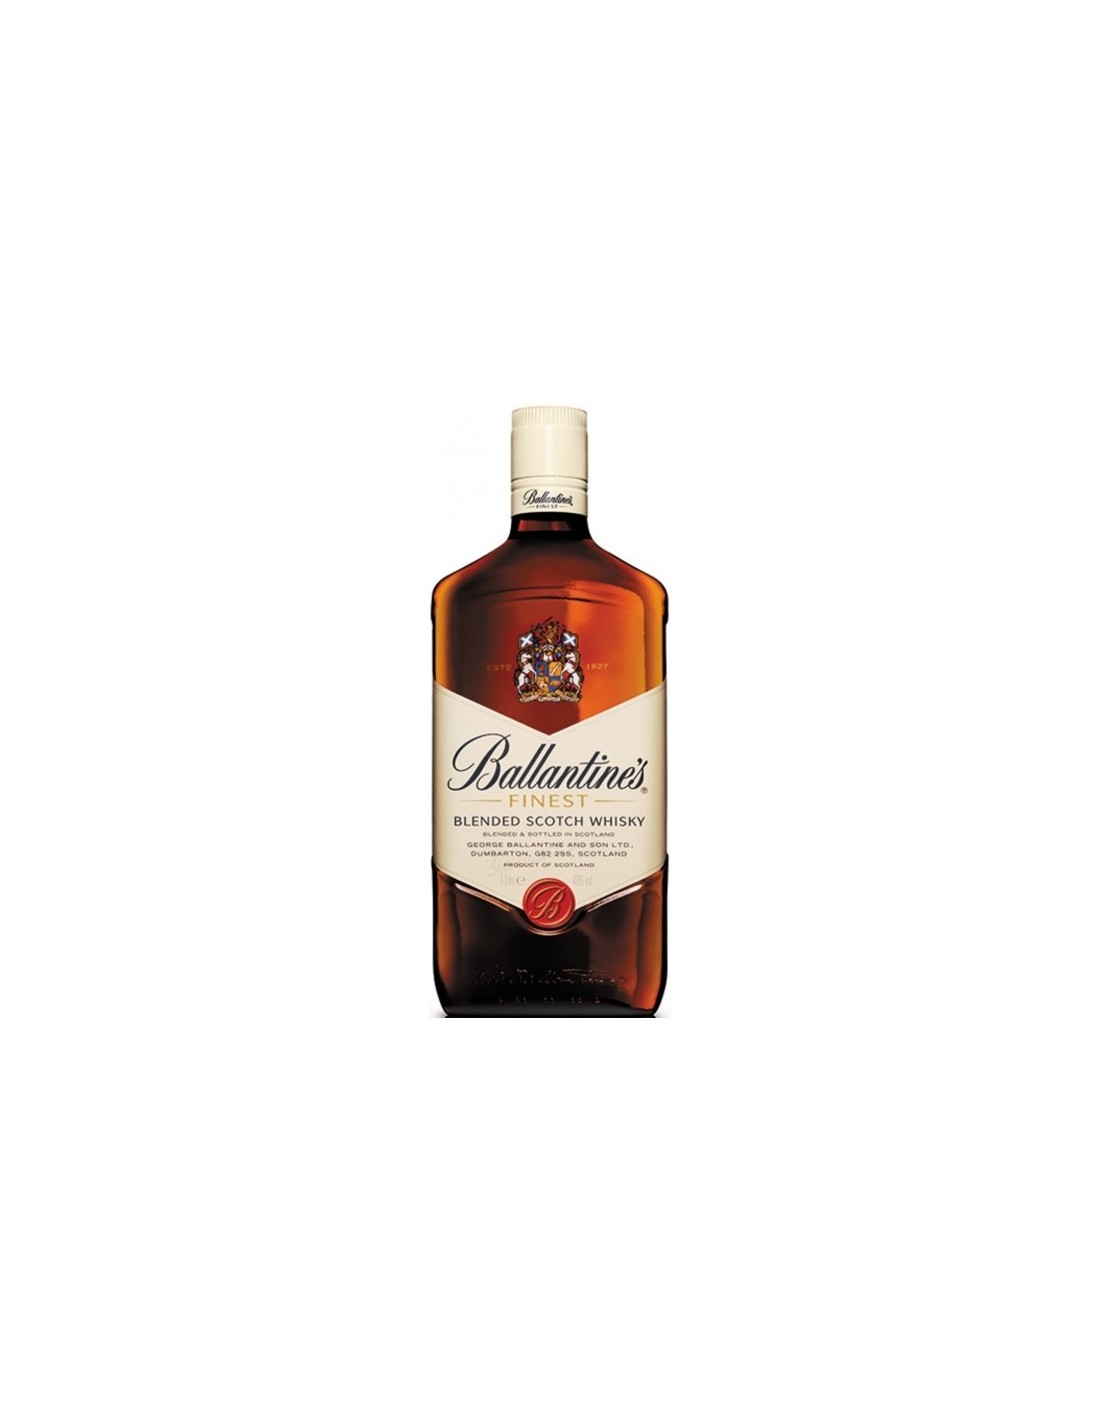 Blended Whisky Ballantine's Finest, 40% alc., 1L, Scotia